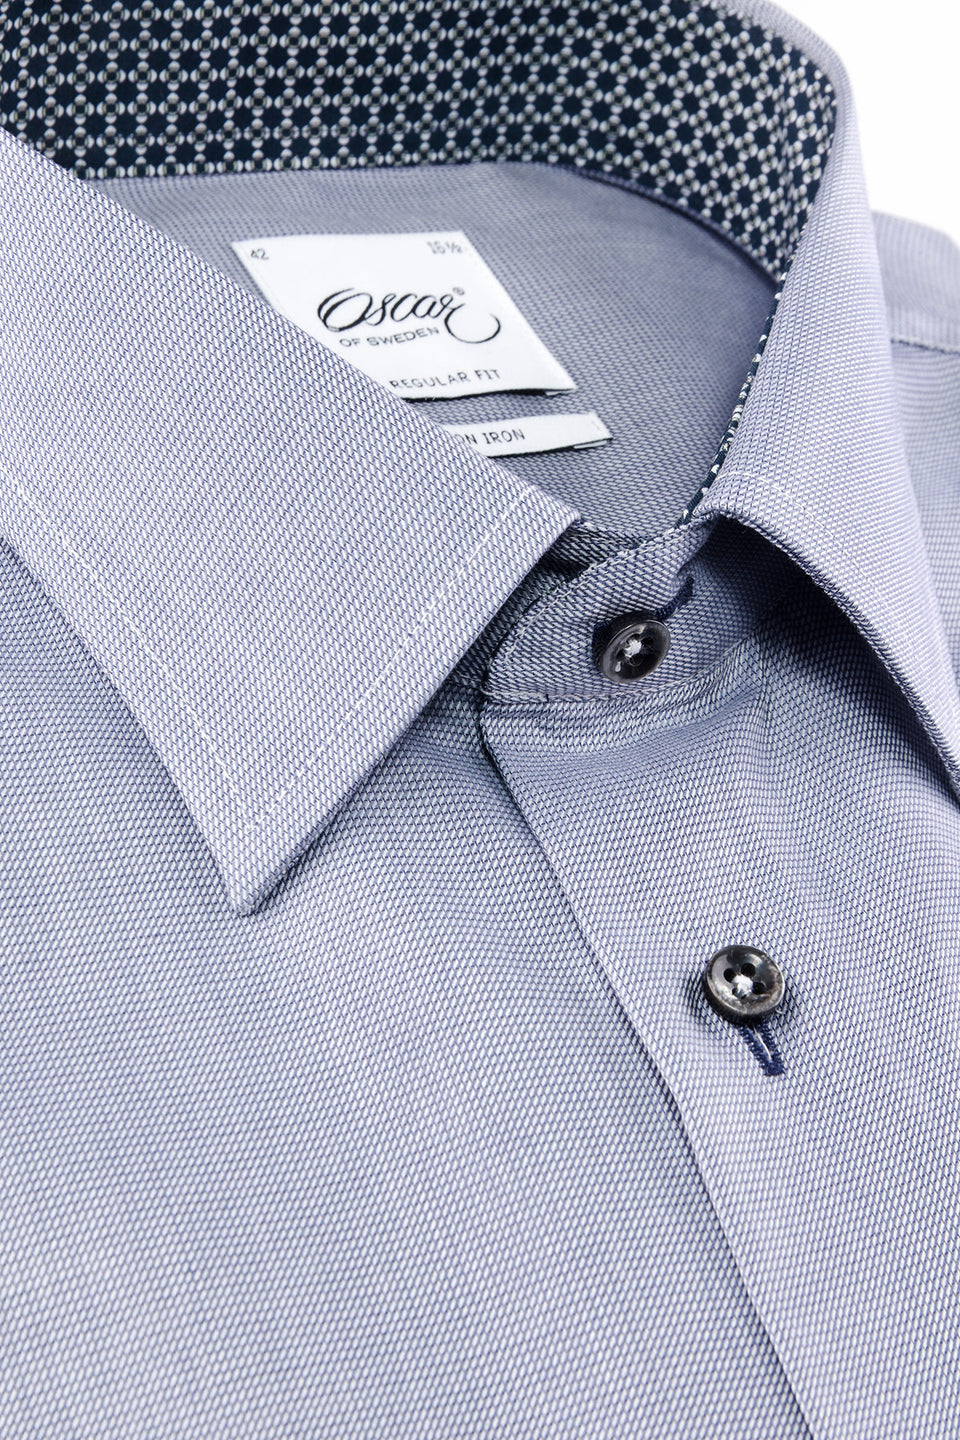 Blue regular fit shirt with navy contrast details